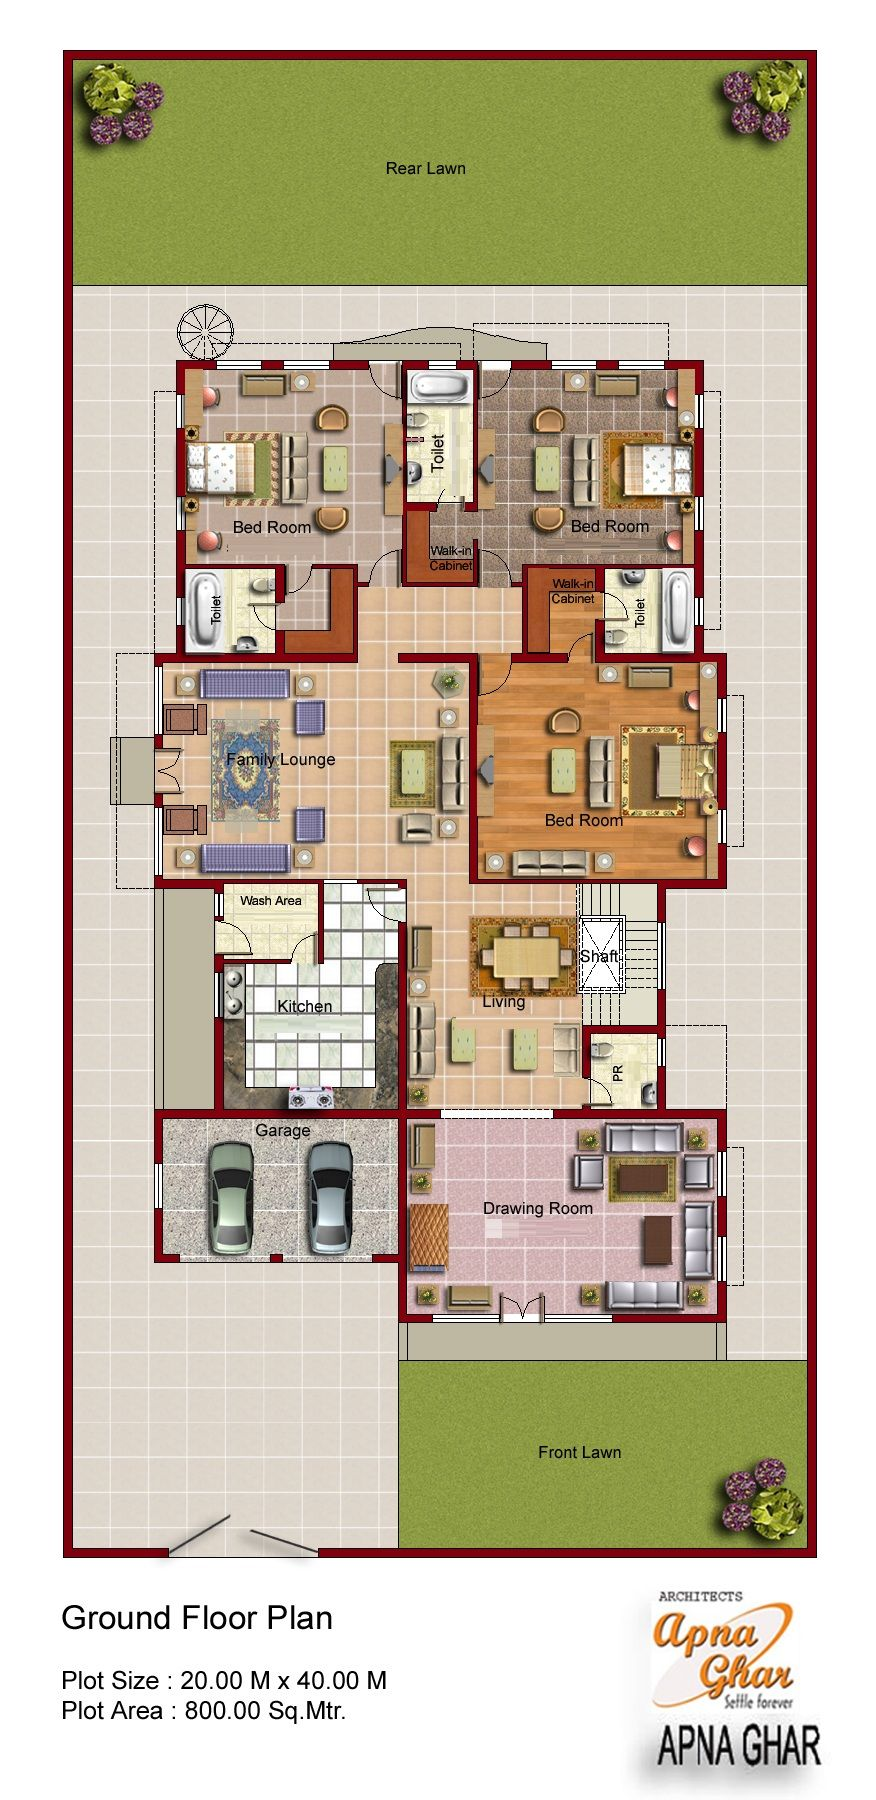 2D Floor plan for modern duplex (2 Floor) house. Area: 800